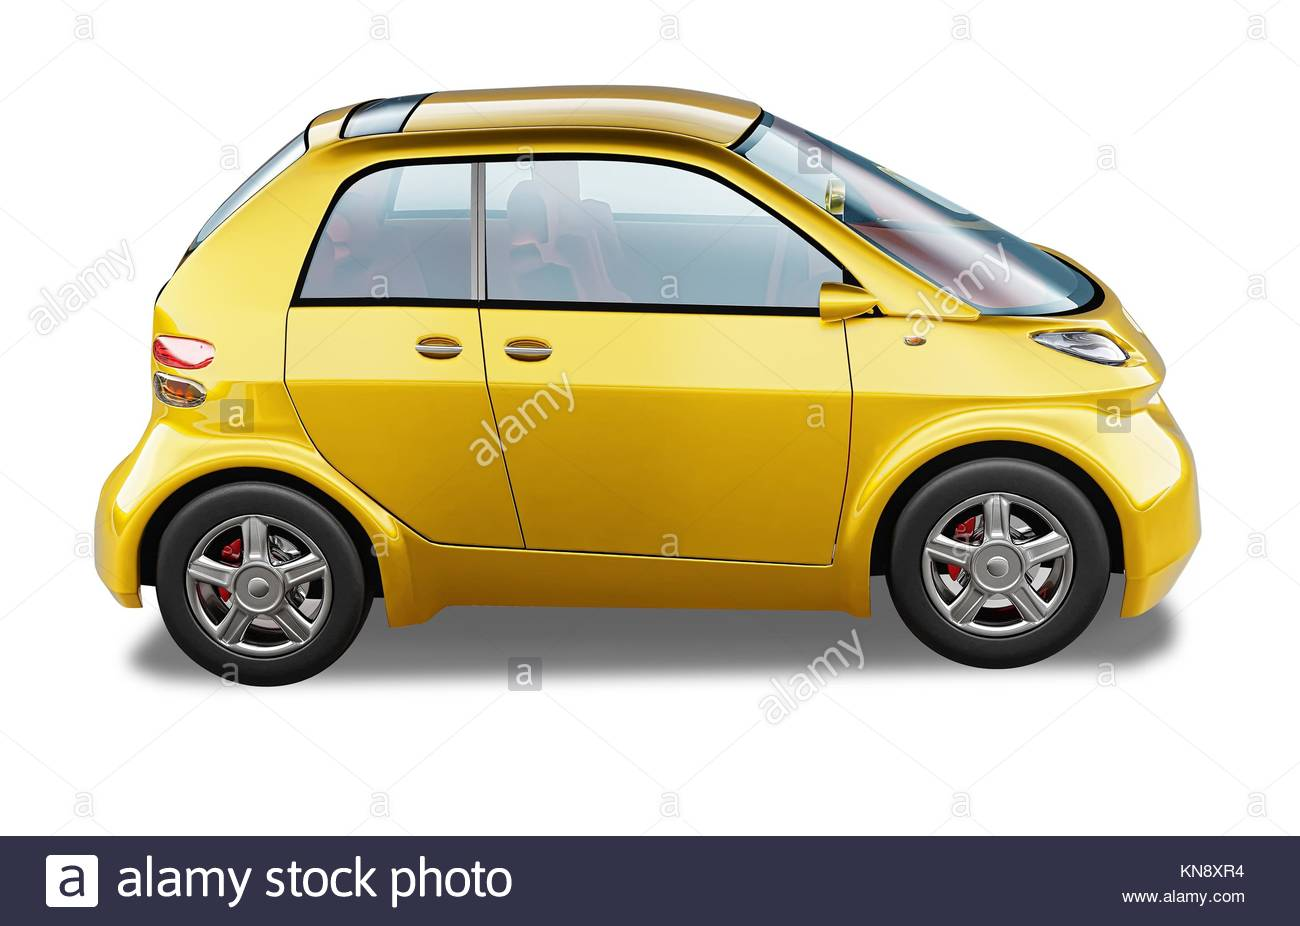 Yellow modern generic small city car. On white background, with clipping path. - Stock Image